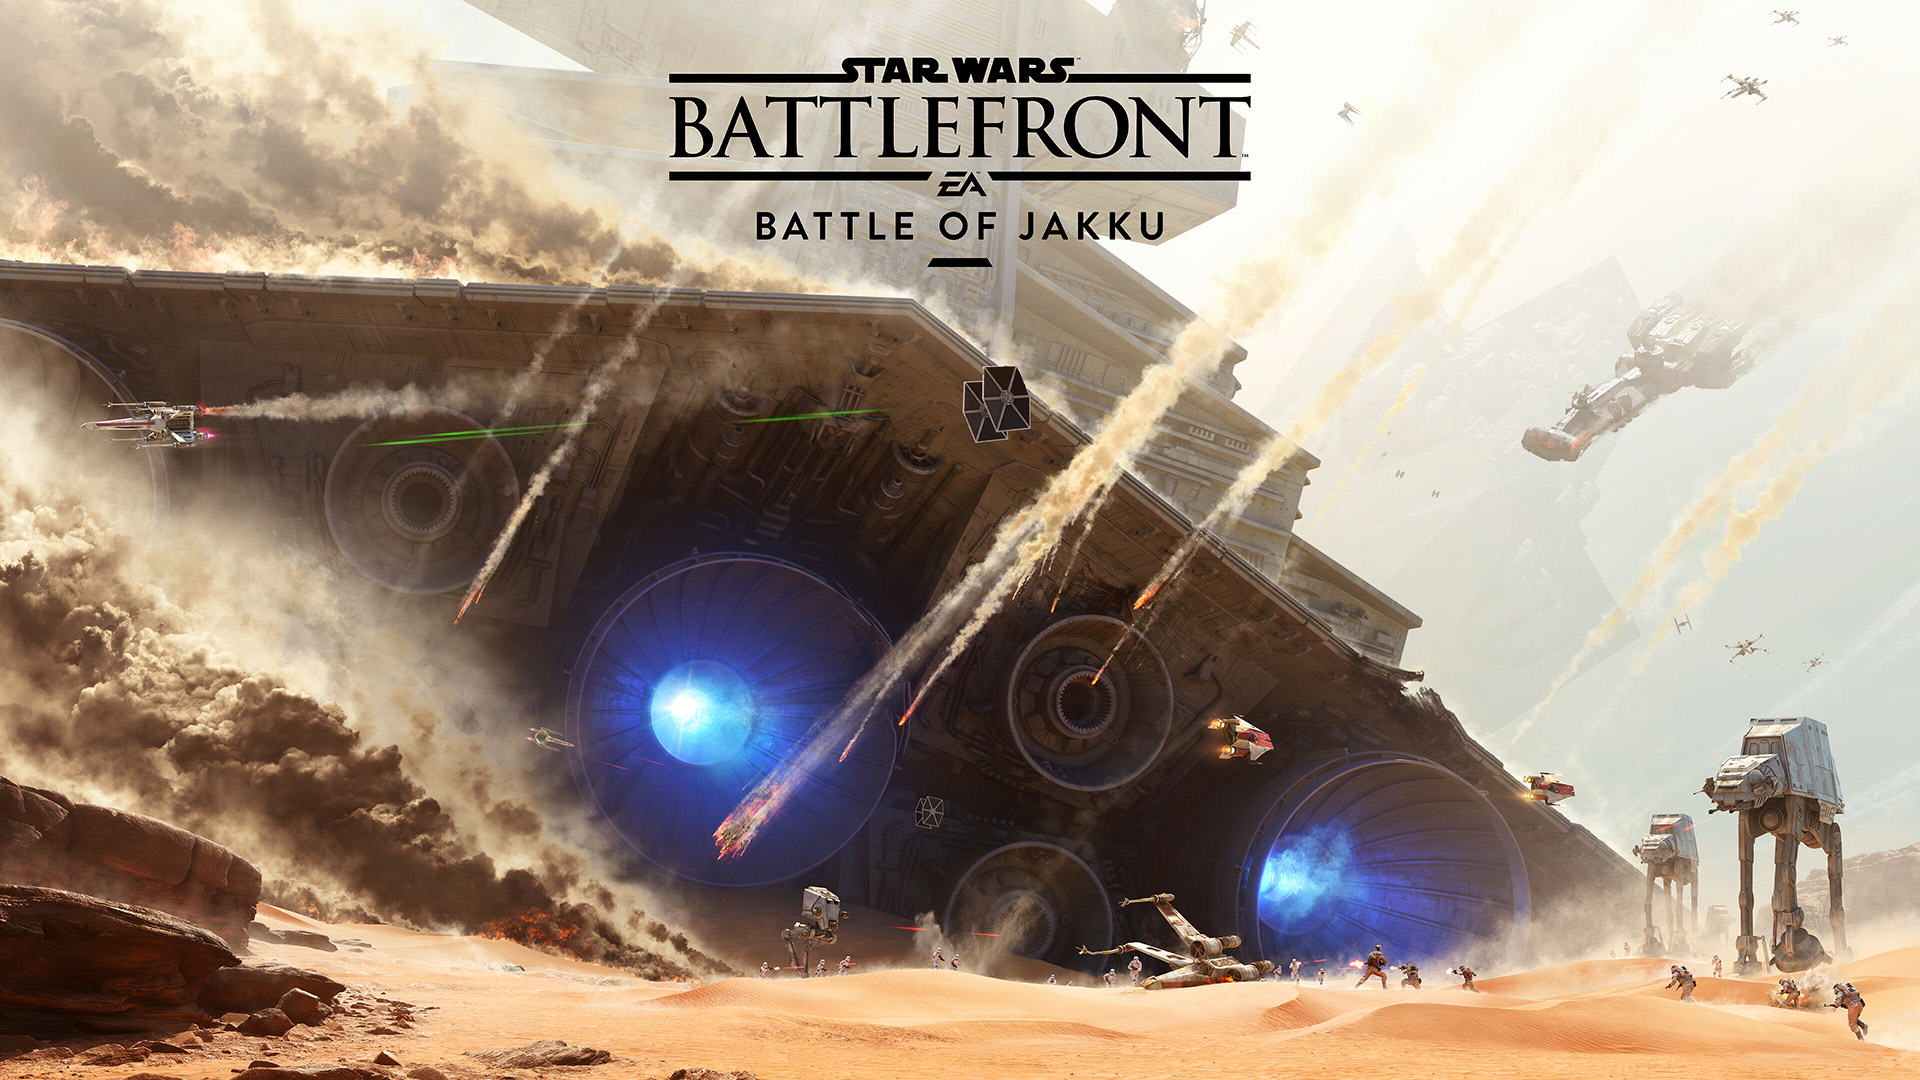 Star Wars Battlefront Getting New 40 Player Mode With Free DLC featuredImage.img